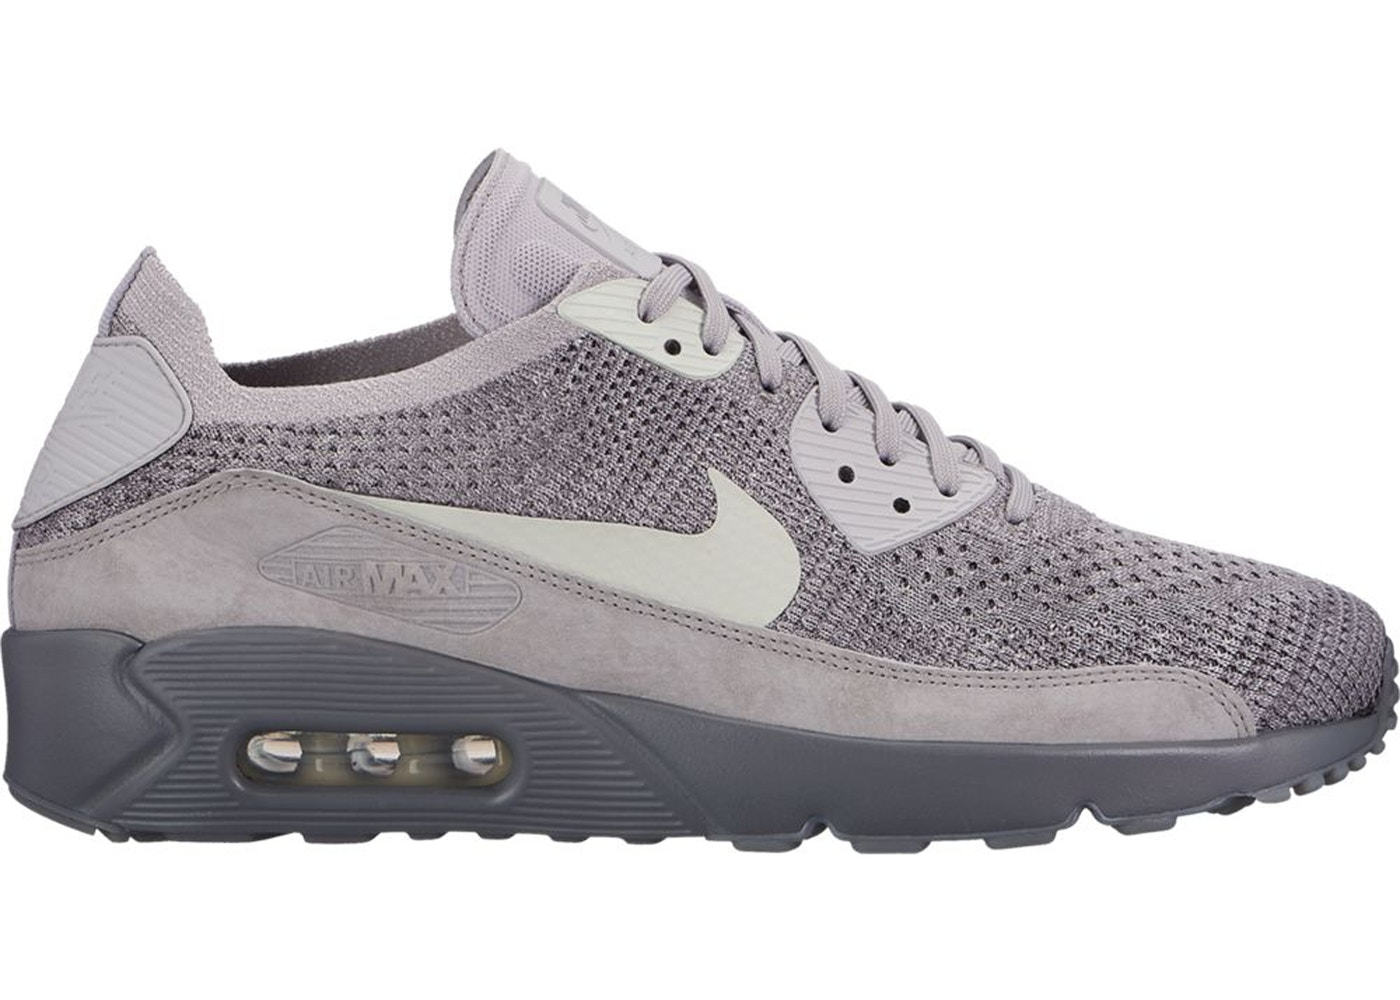 20ff51c191ef Air Max 90 Ultra 2.0 Flyknit Atmosphere Grey - 875943-007